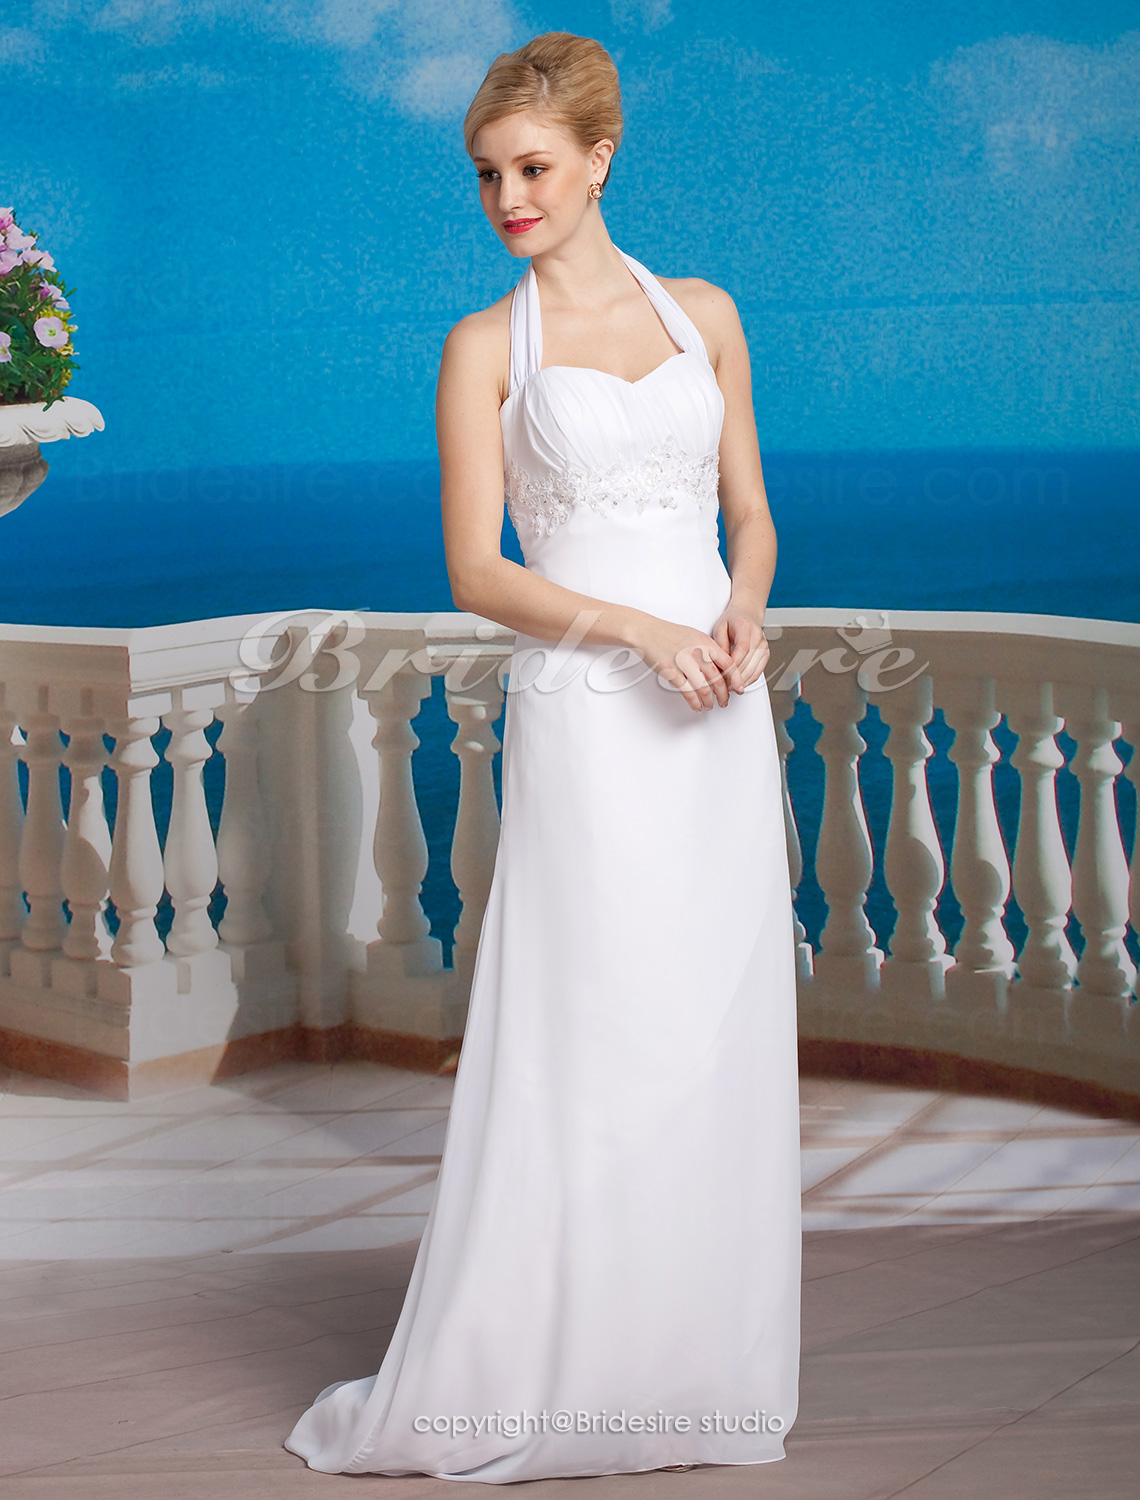 Sheath/ Column Chiffon Halter Asymmetrical Empire Wedding Dress with Beaded Appliques